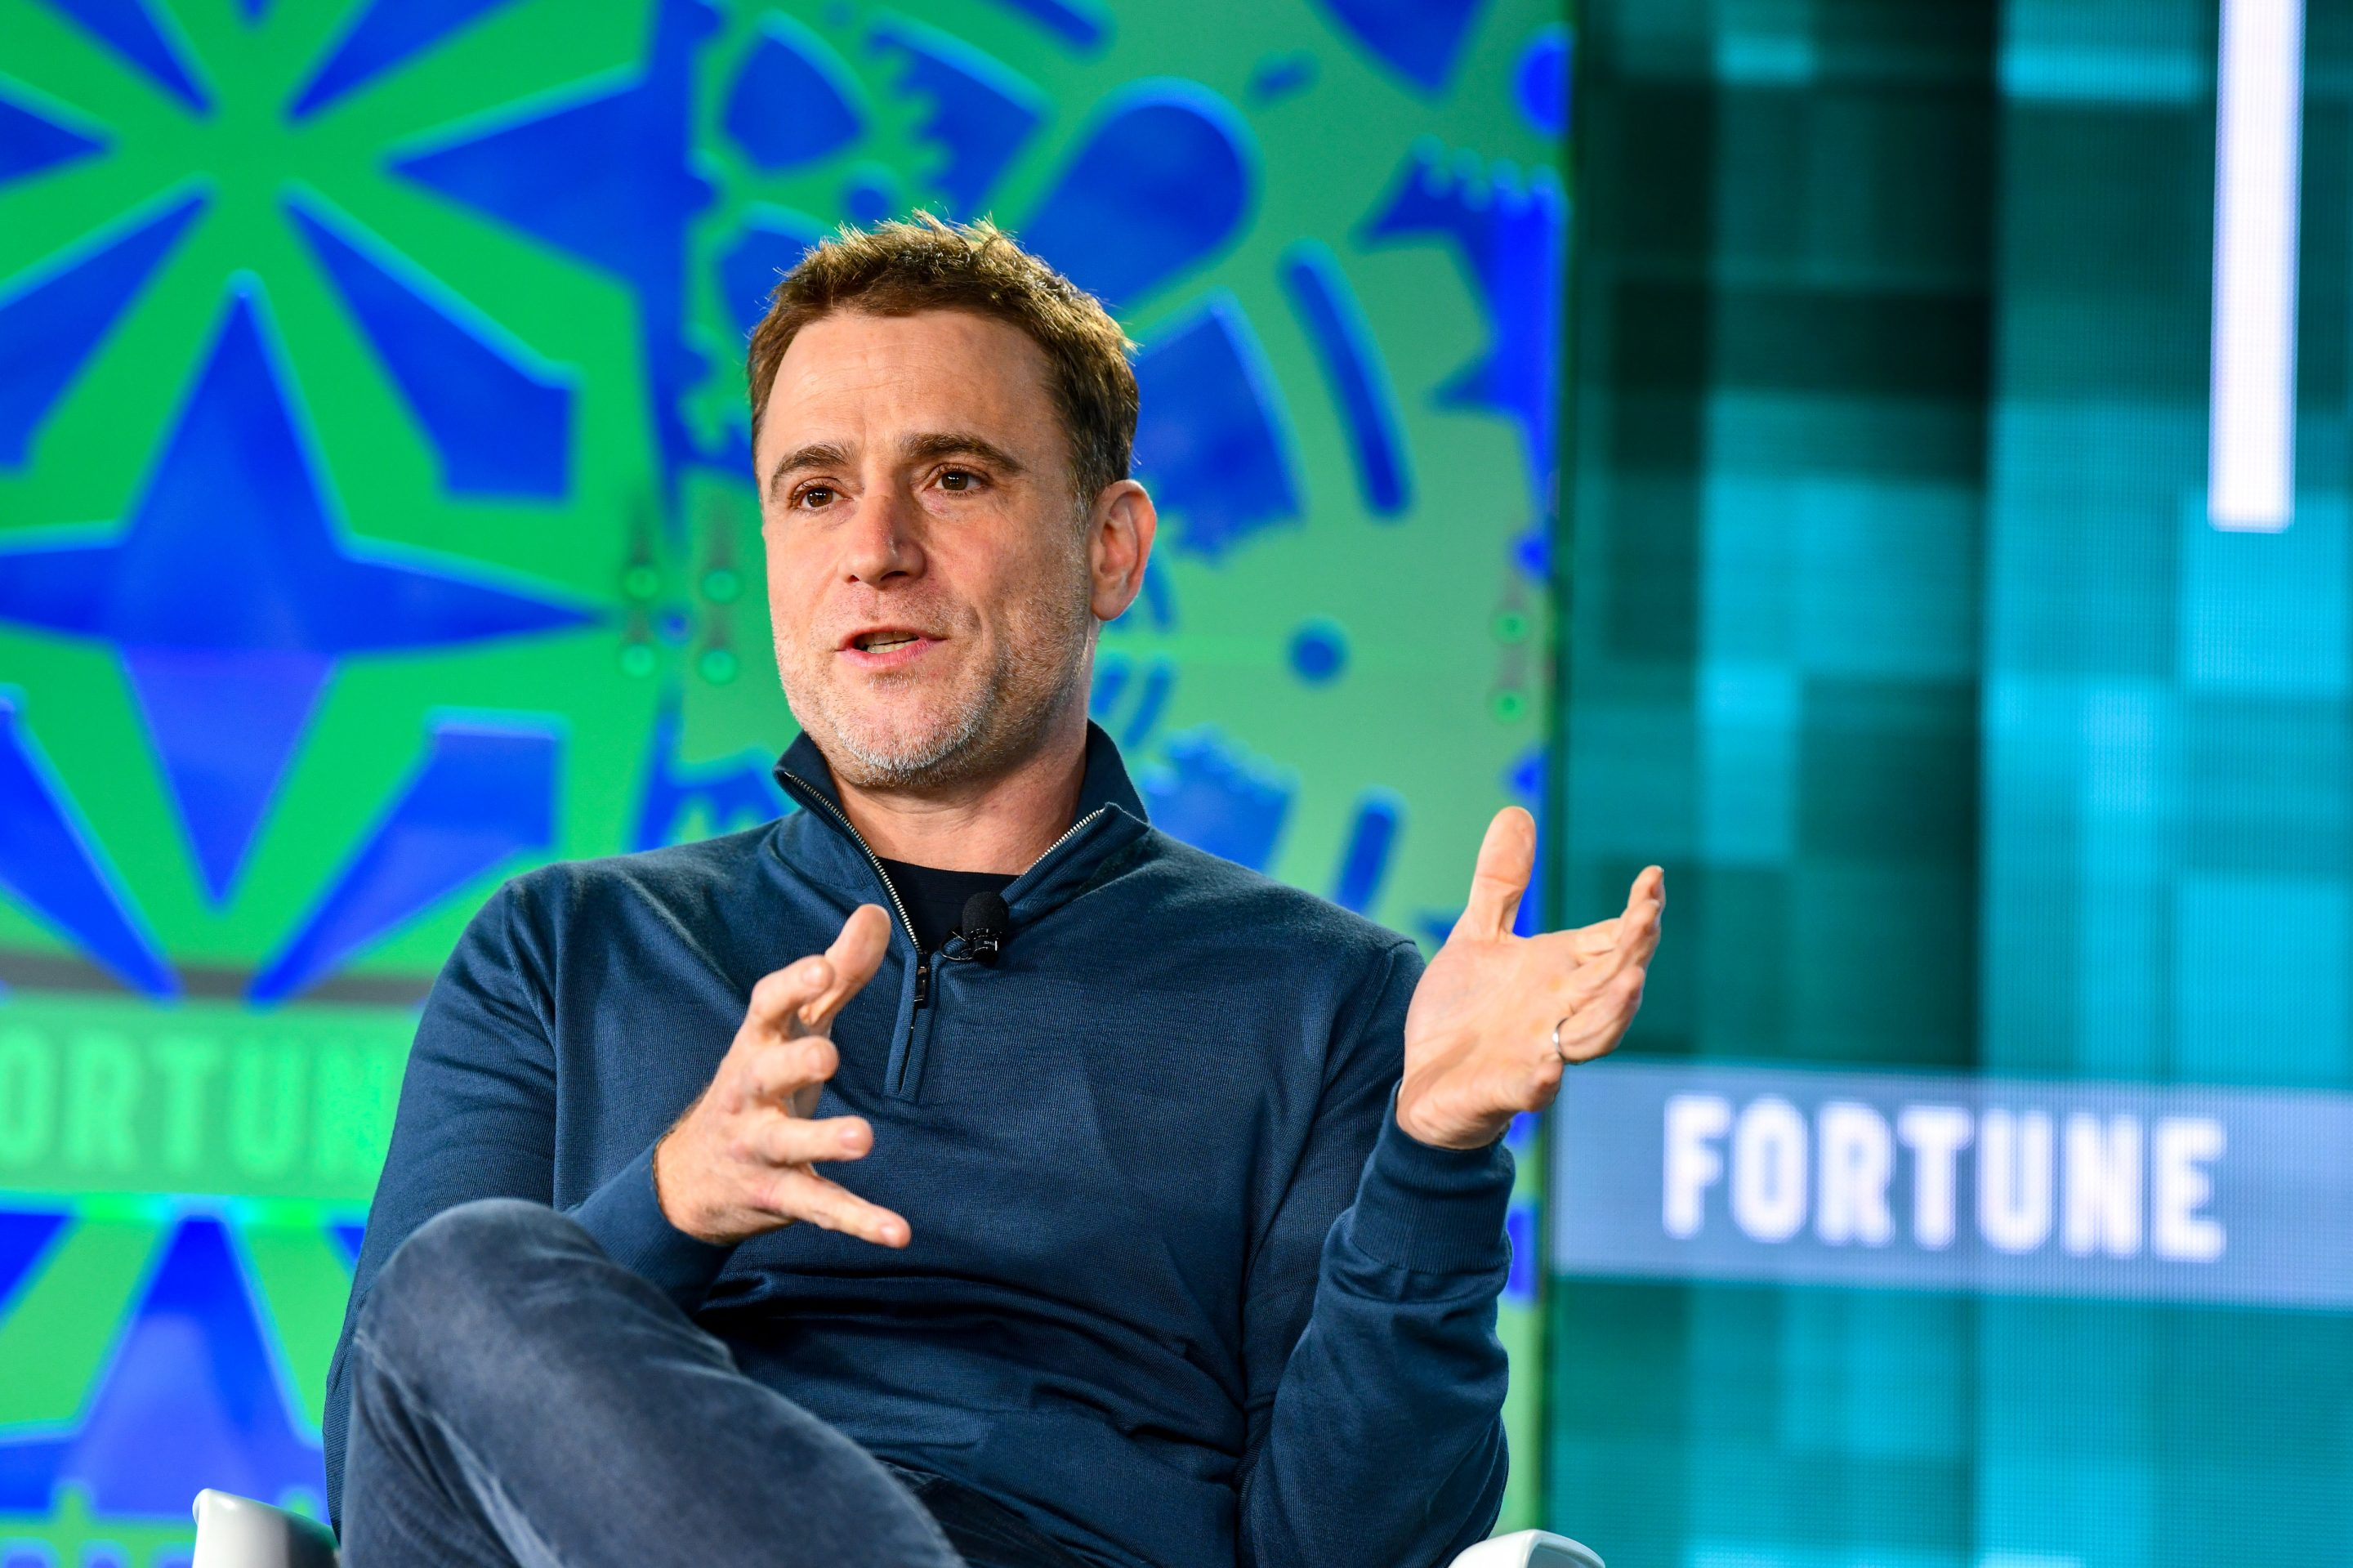 Slack CEO Stewart Butterfield speaks at Fortune's 2019 Brainstorm Tech conference on July 15, 2019 in Aspen, Colo.